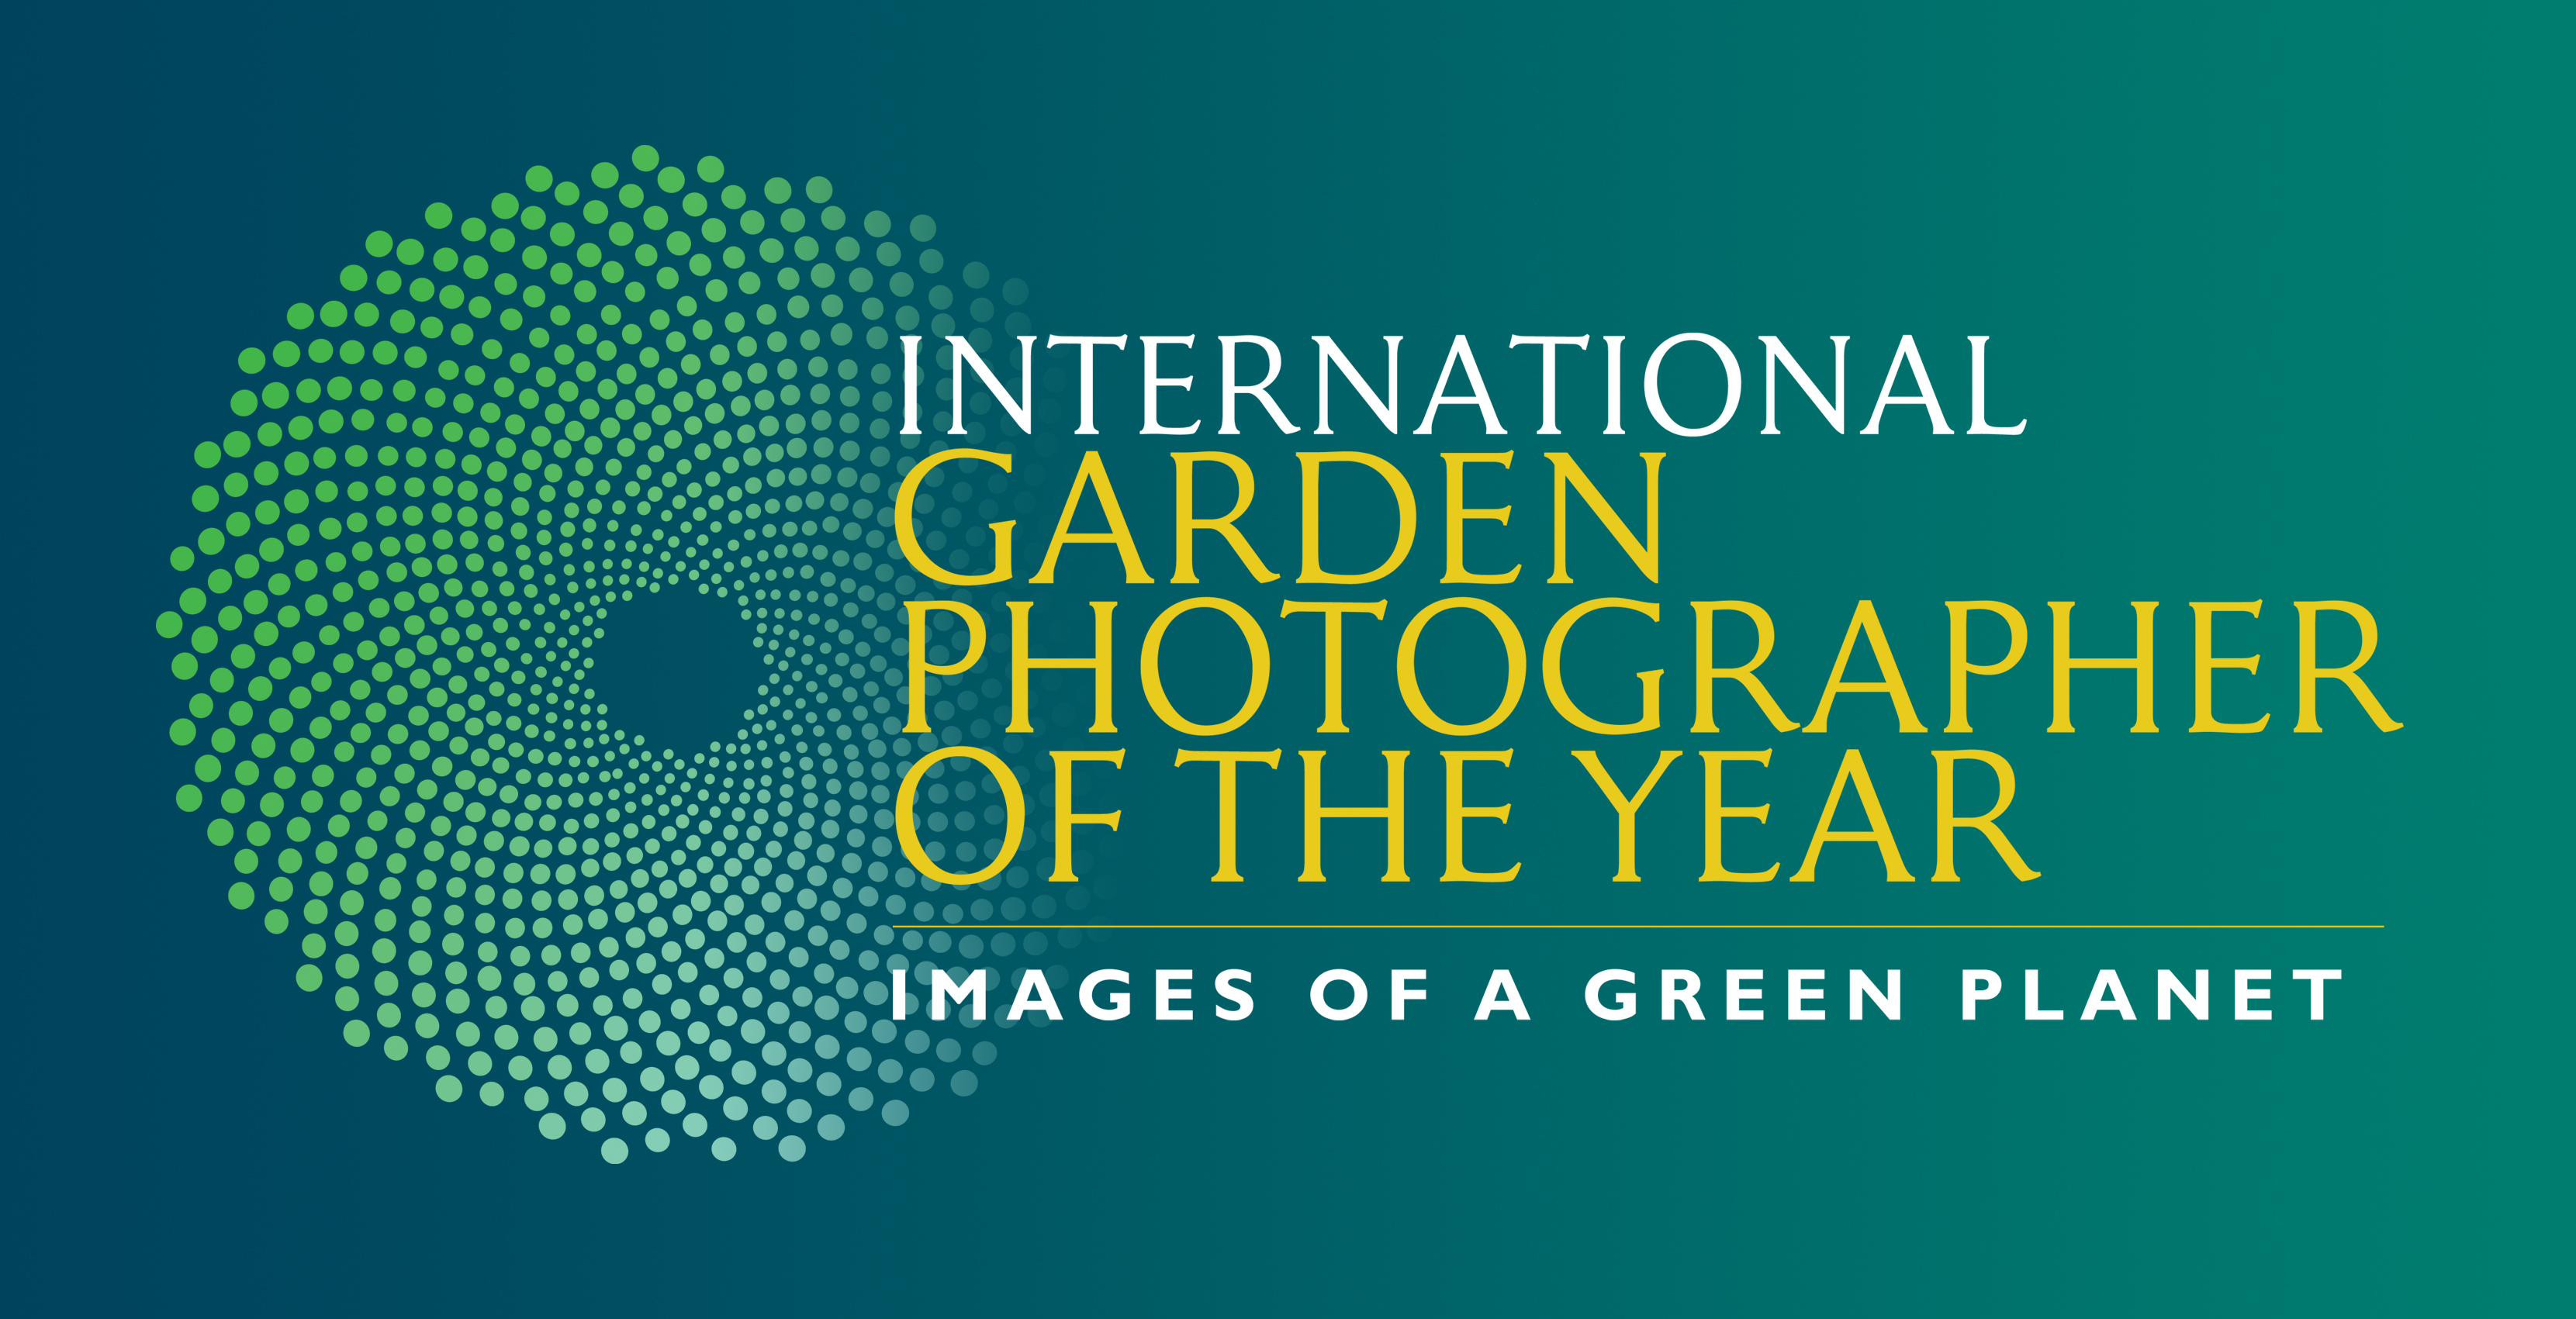 World's most prestigious photo competition for plants and gardens closes October 31st!